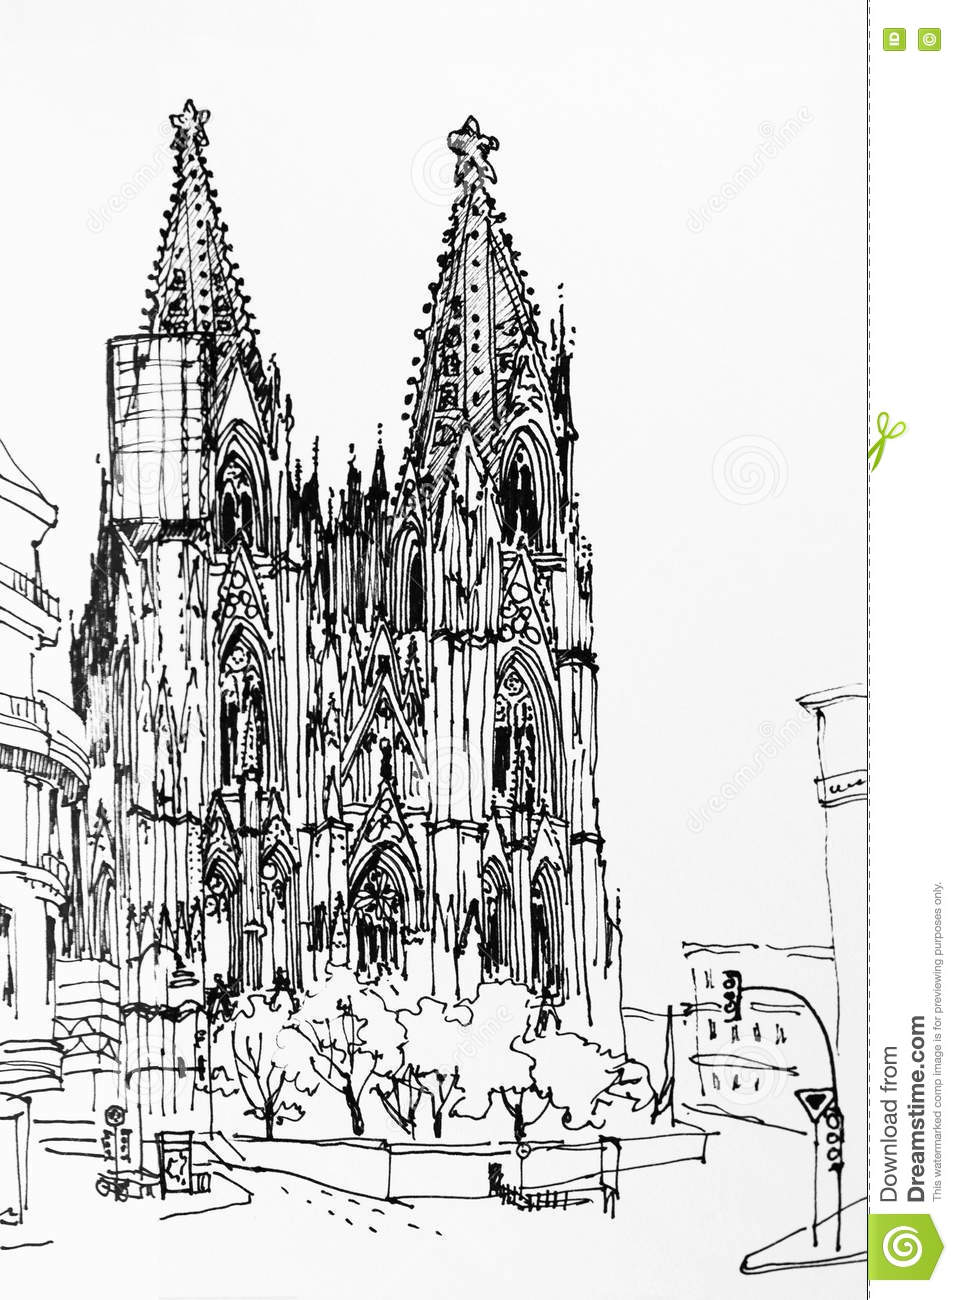 Download Koln Cologne Dome Gothic Church Speed Drawing Architectural In Stock Illustration